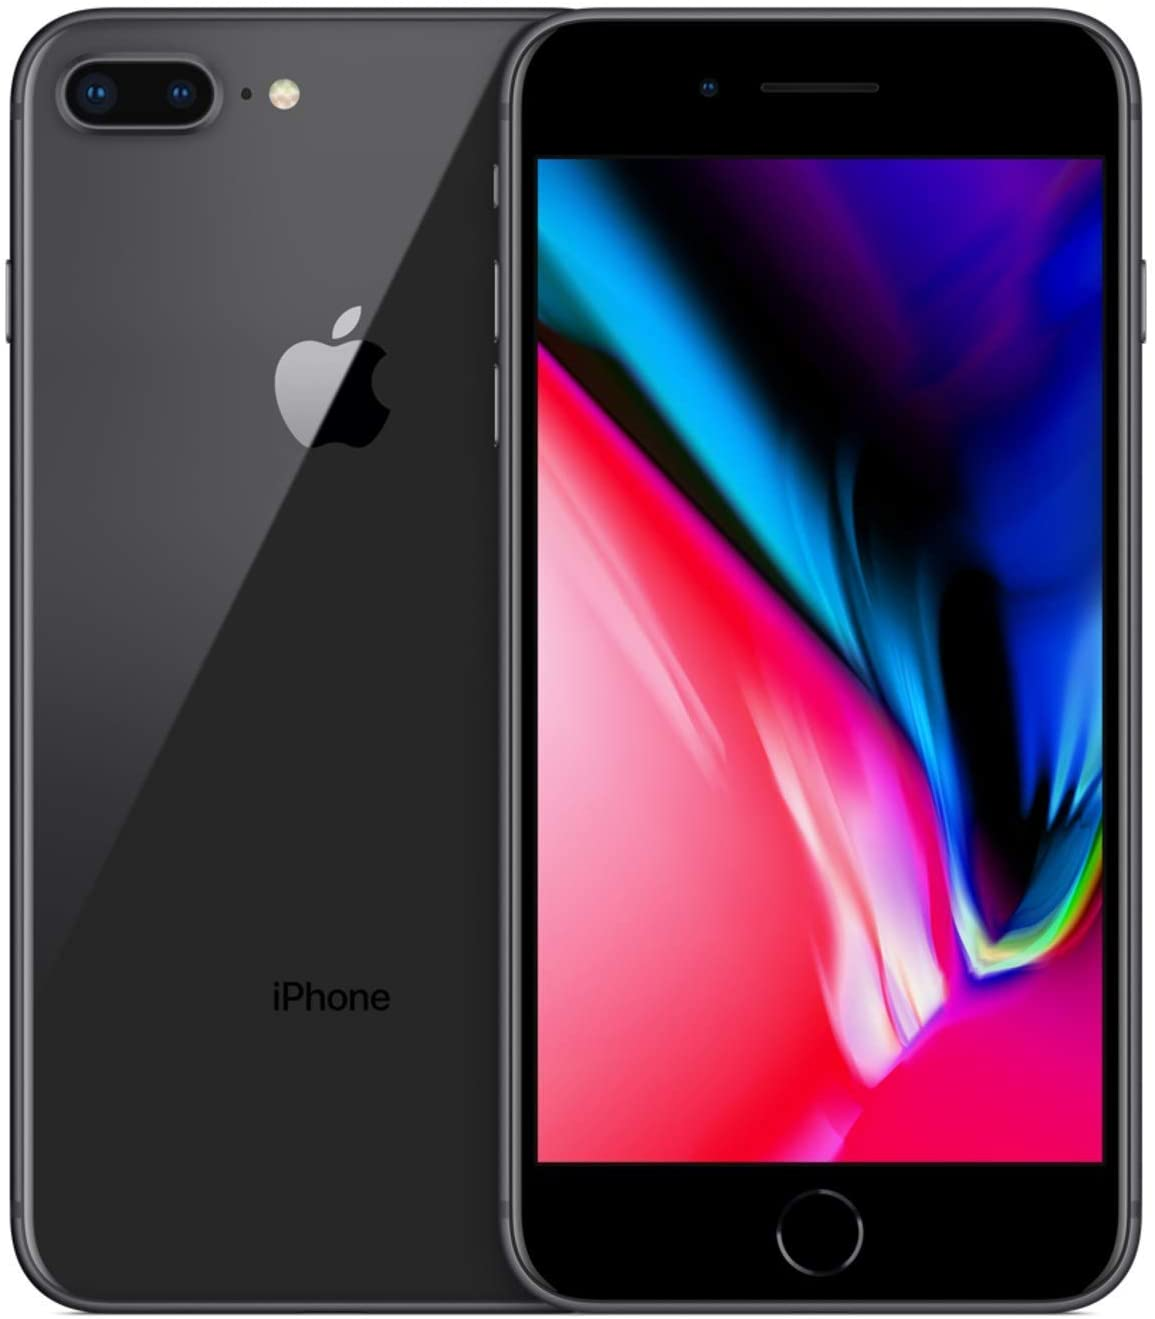 Apple iPhone 8 Plus, Fully Unlocked, 256 GB - Space Gray (Renewed)